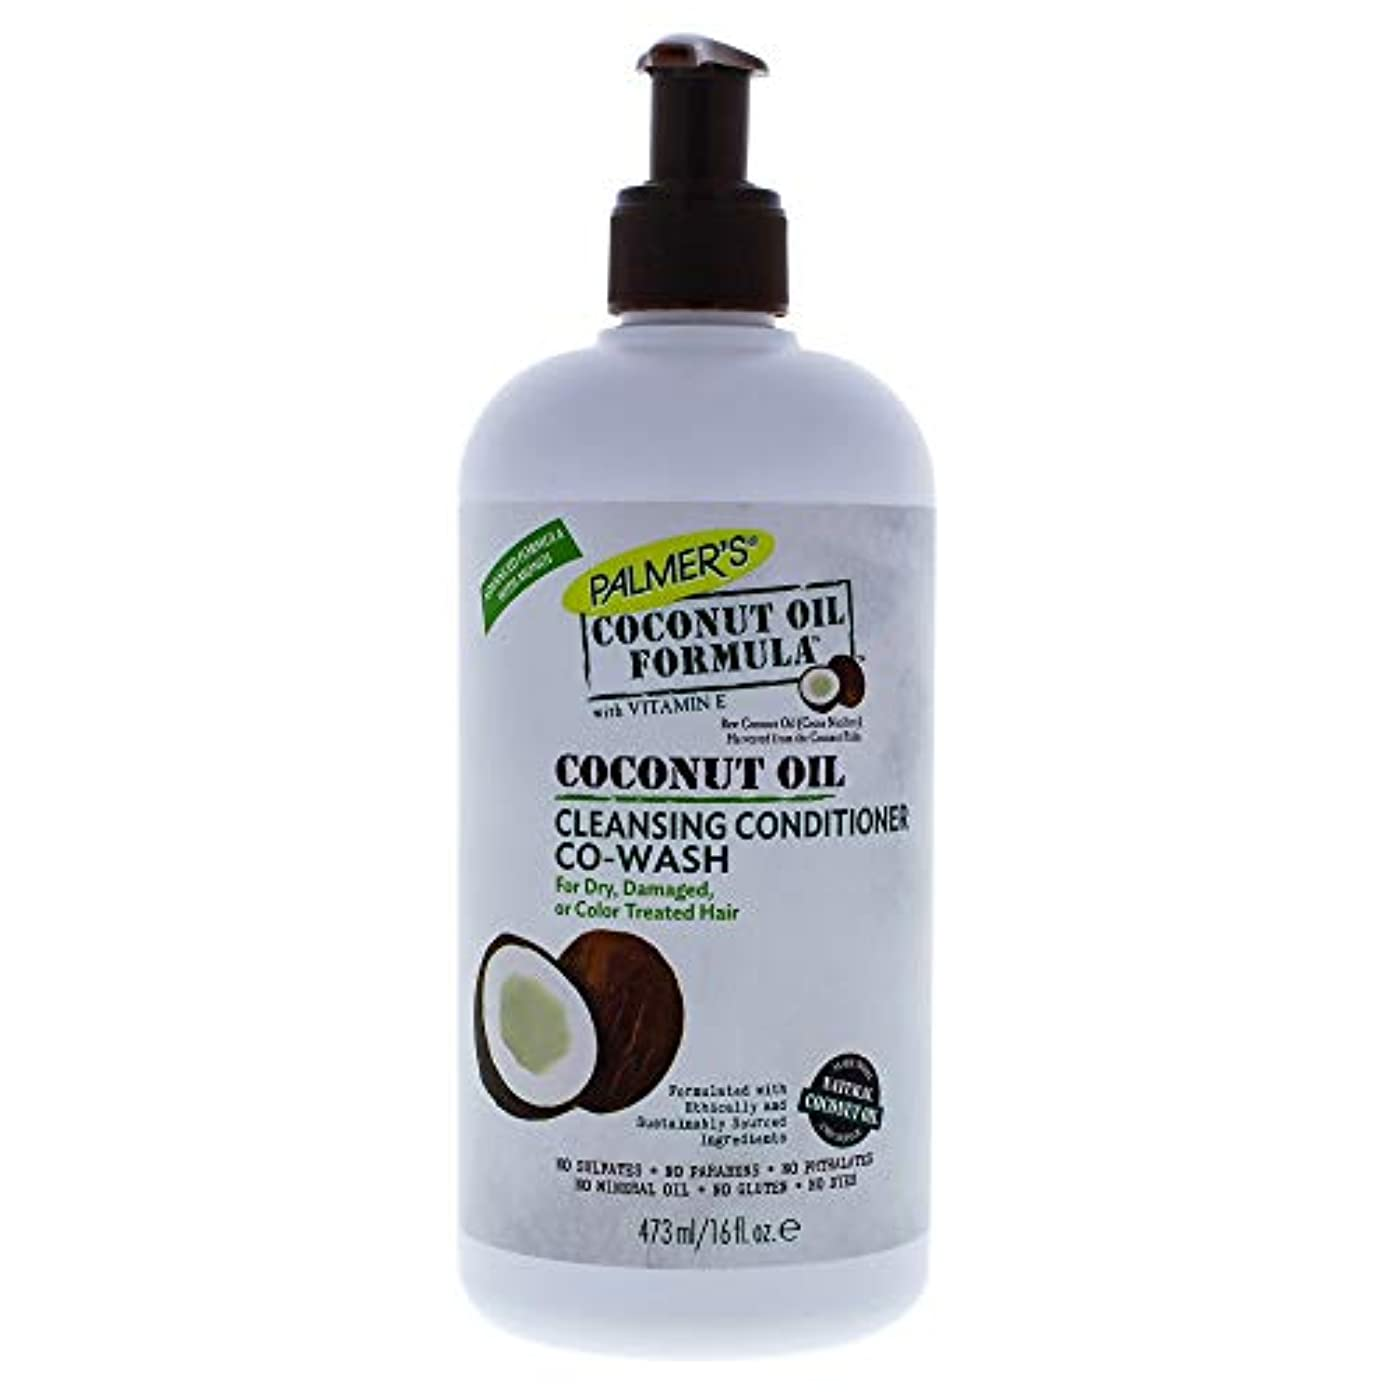 舞い上がるなんとなく重要性Palmer's Coconut Formula Co-Wash Cleansing Conditioner, Shampoo Alternative 473ml